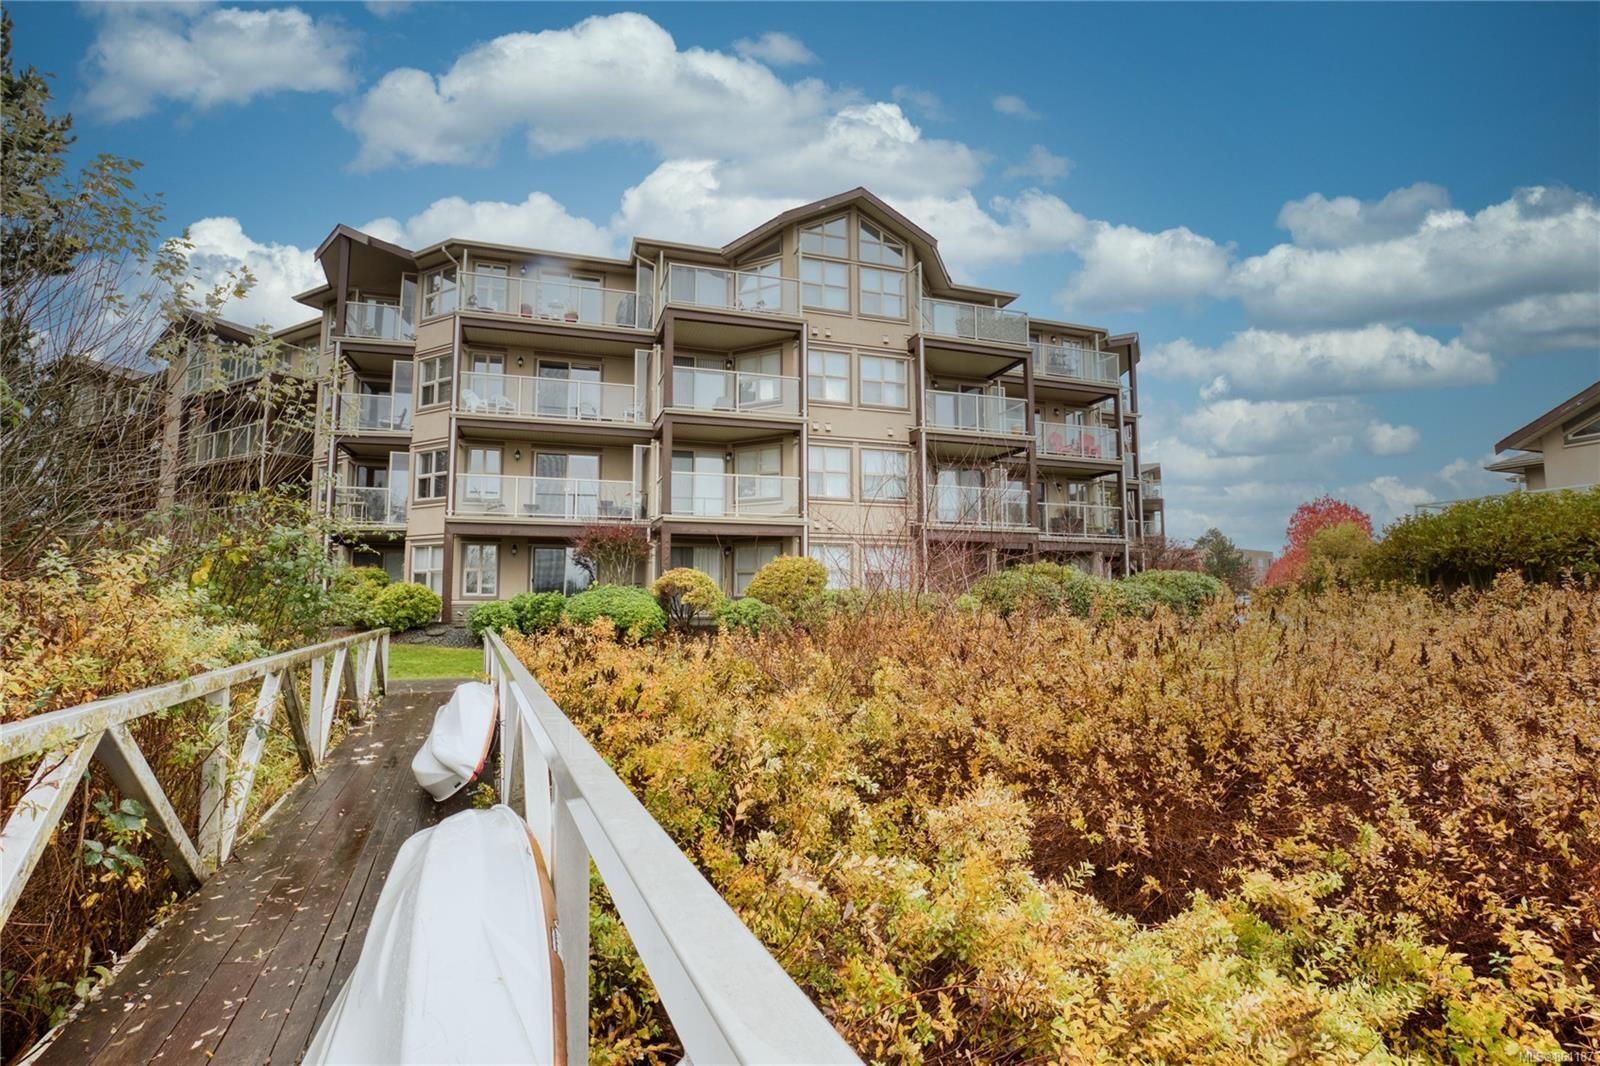 Main Photo: 209 4949 Wills Rd in : Na Uplands Condo for sale (Nanaimo)  : MLS®# 861187